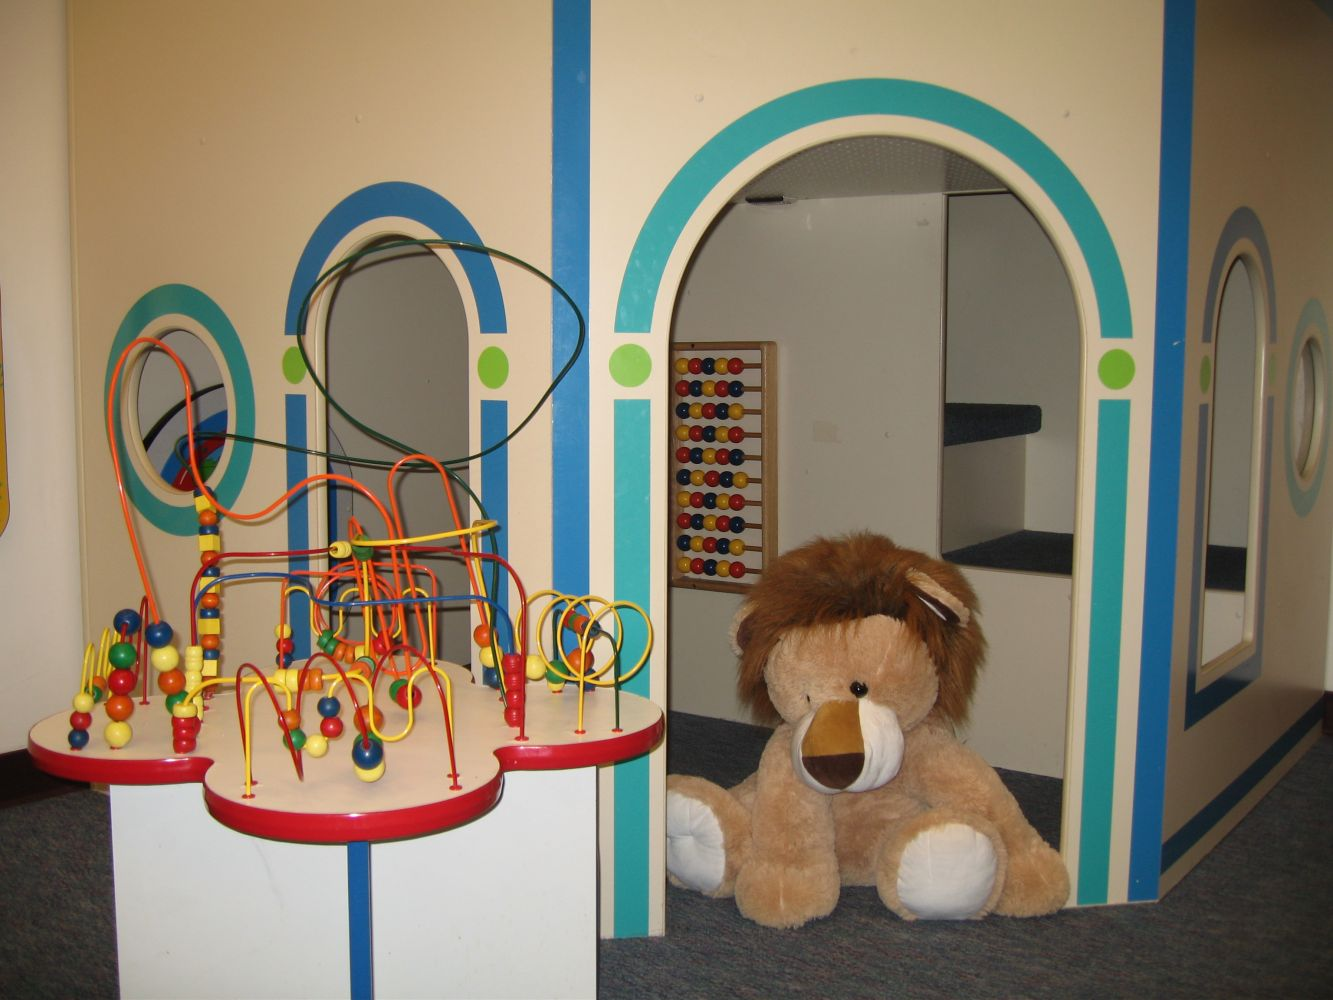 Children's play area in our professional office lobby in Anchorage, Alaska